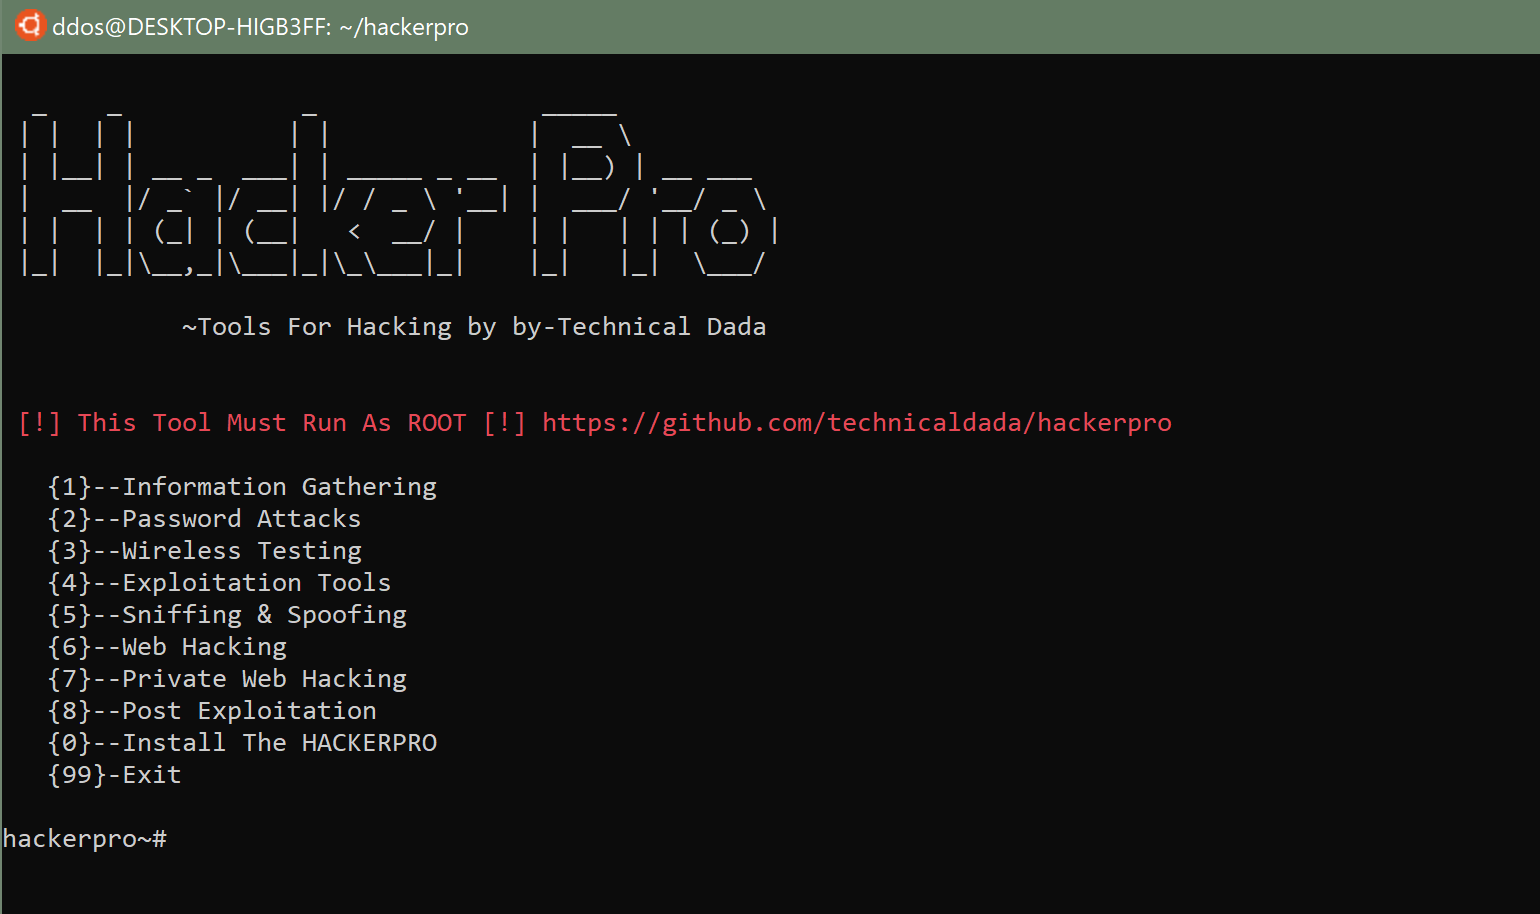 HackerPro: All in One Hacking Tool for Linux & Android